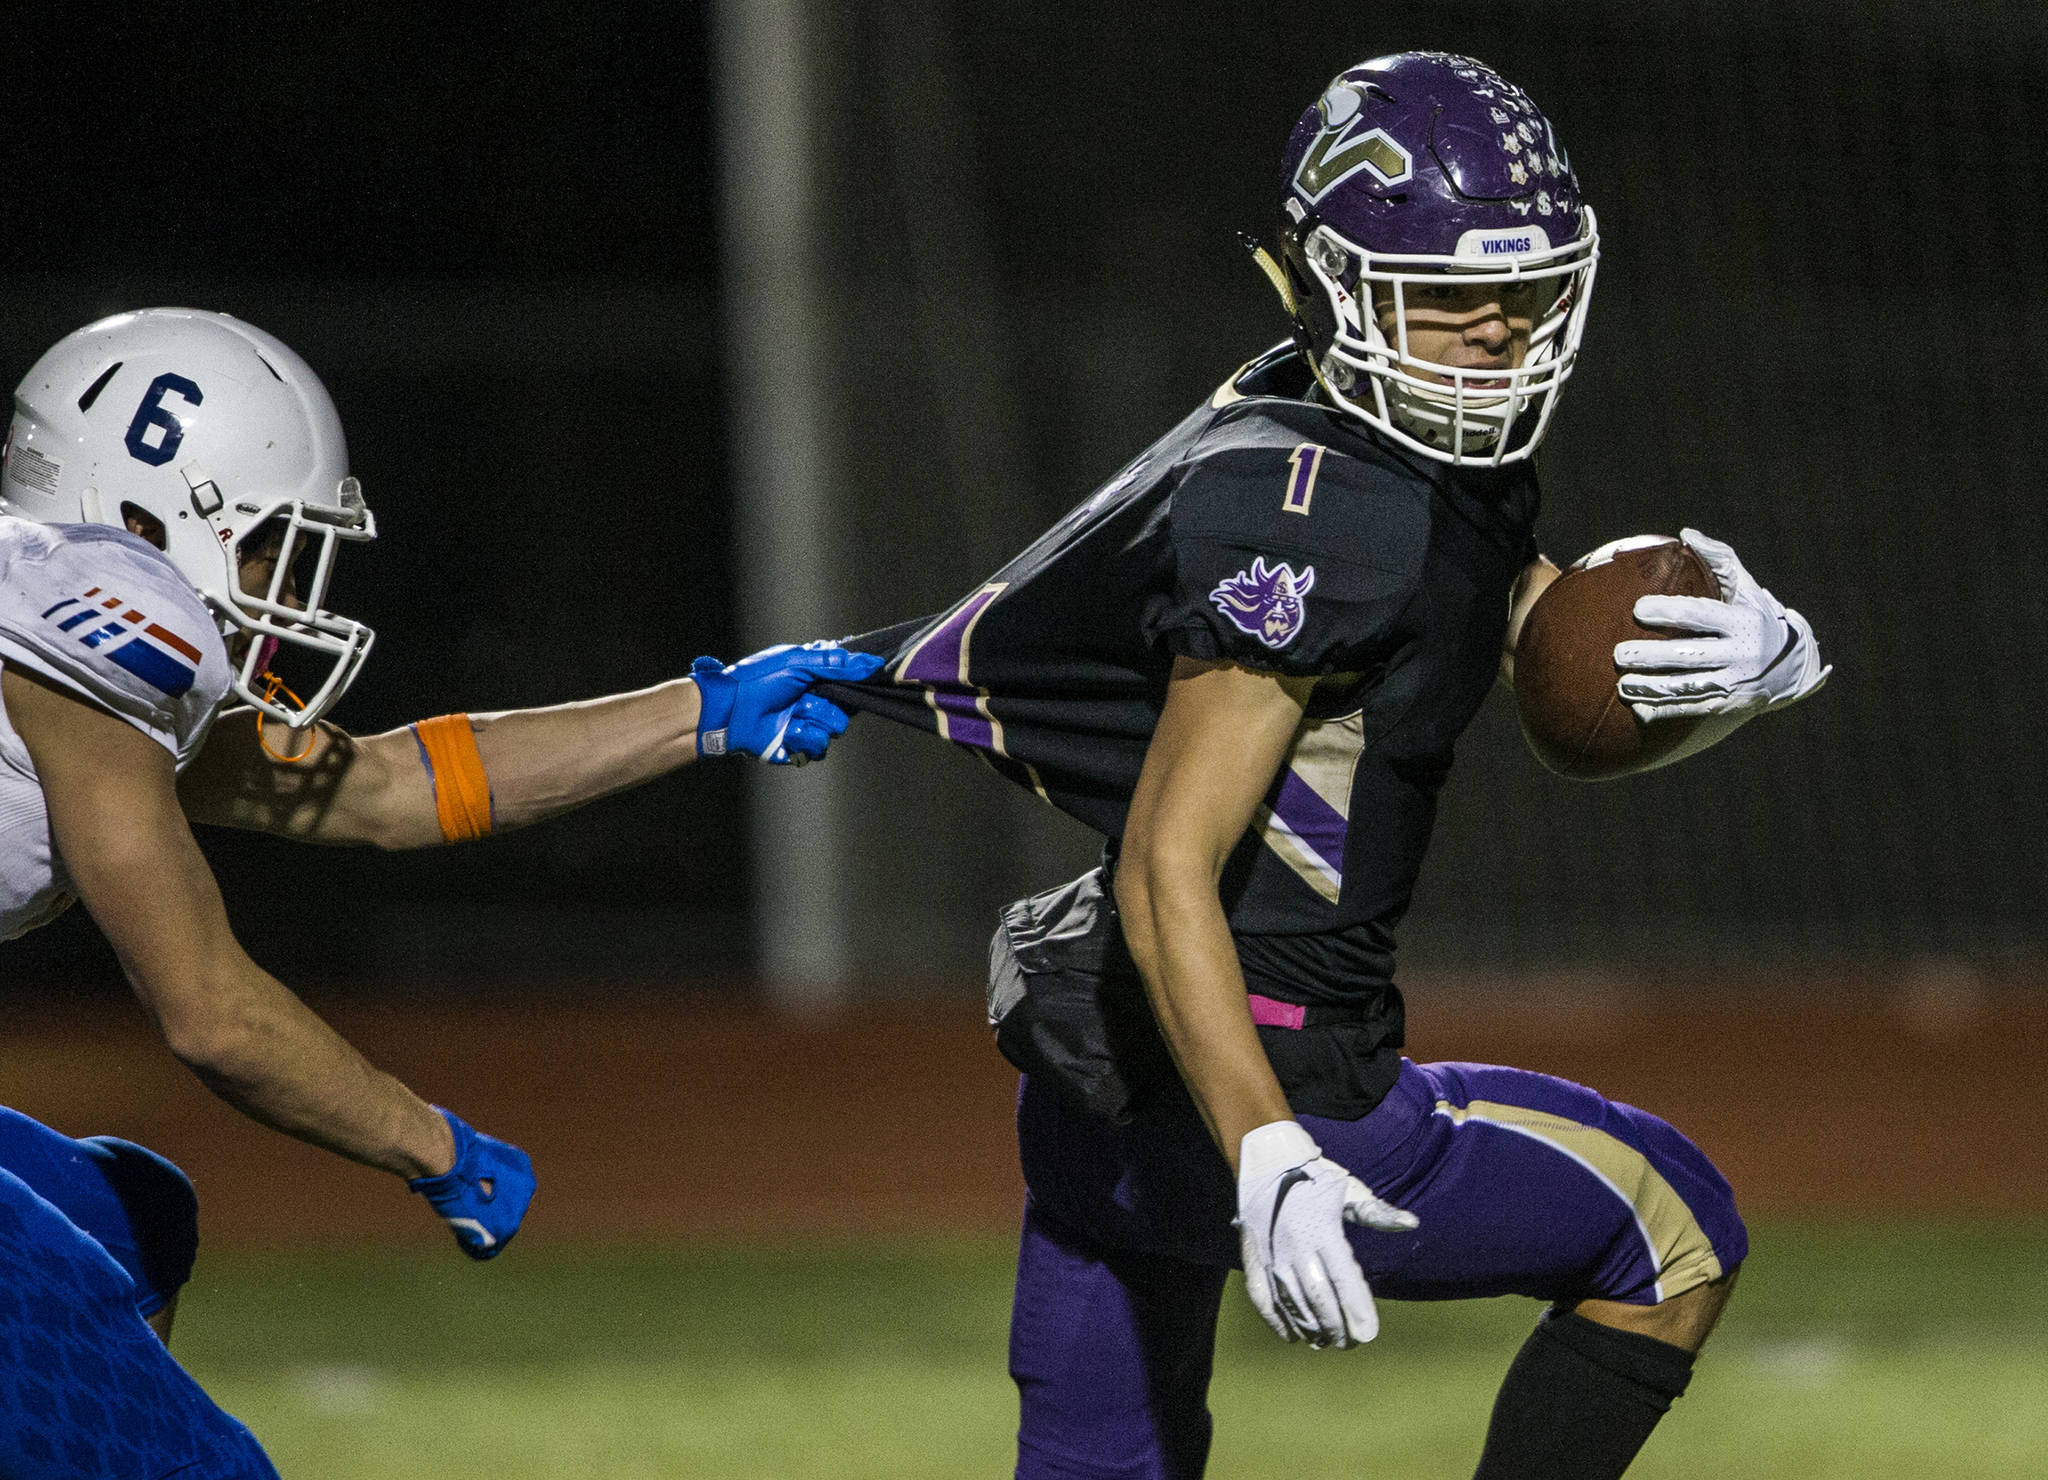 Lake Stevens' Ian Hanson runs the ball into the end zone while his jersey is pulled during the game against Graham Kapowsin on Saturday, Nov. 17, 2018 in Everett, Wa. (Olivia Vanni / The Herald)